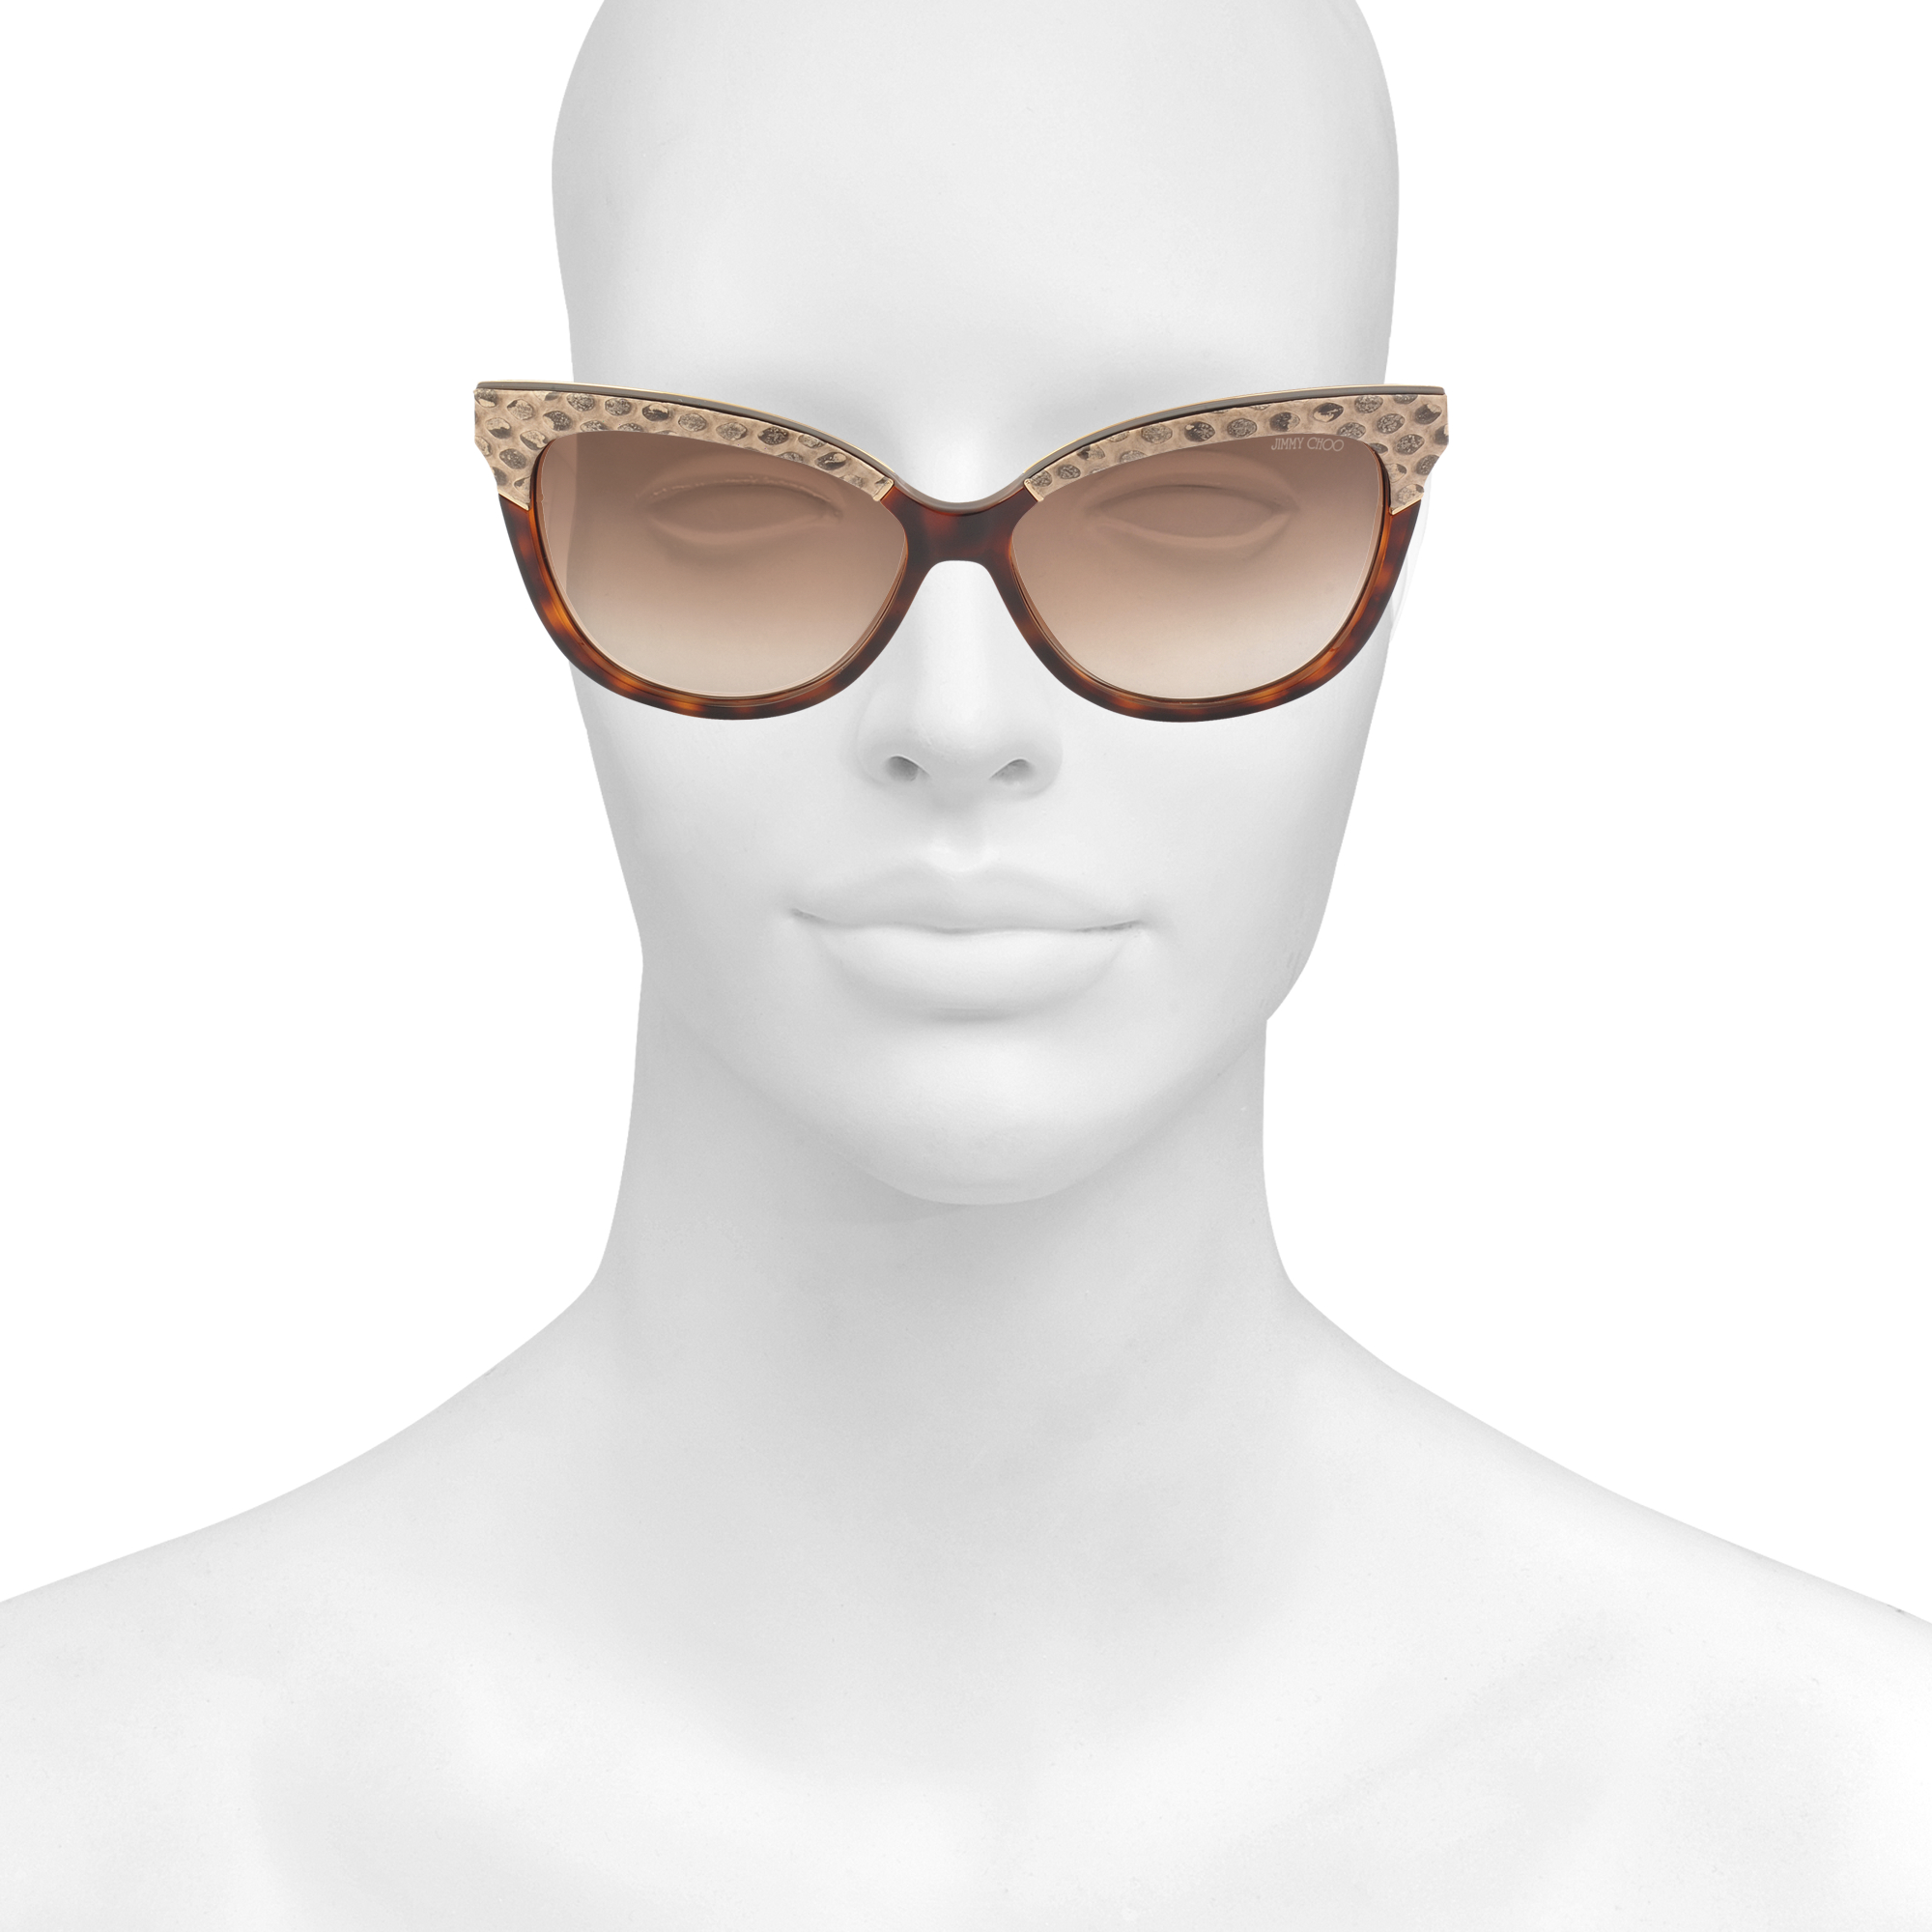 Jimmy Choo Synthetic Ines/s Sunglasses in Brown